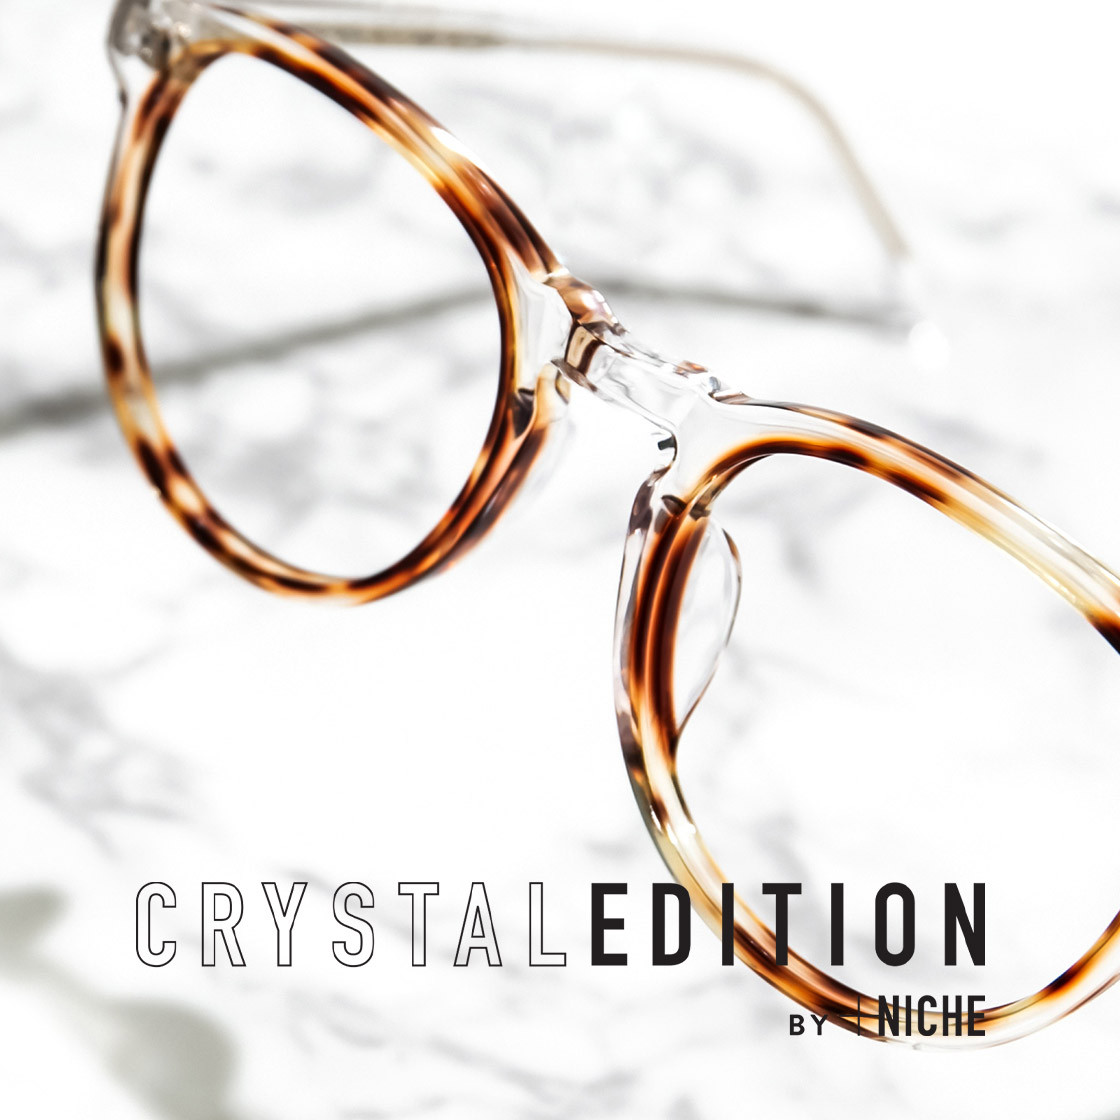 CRYSTAL EDITION BY NICHE